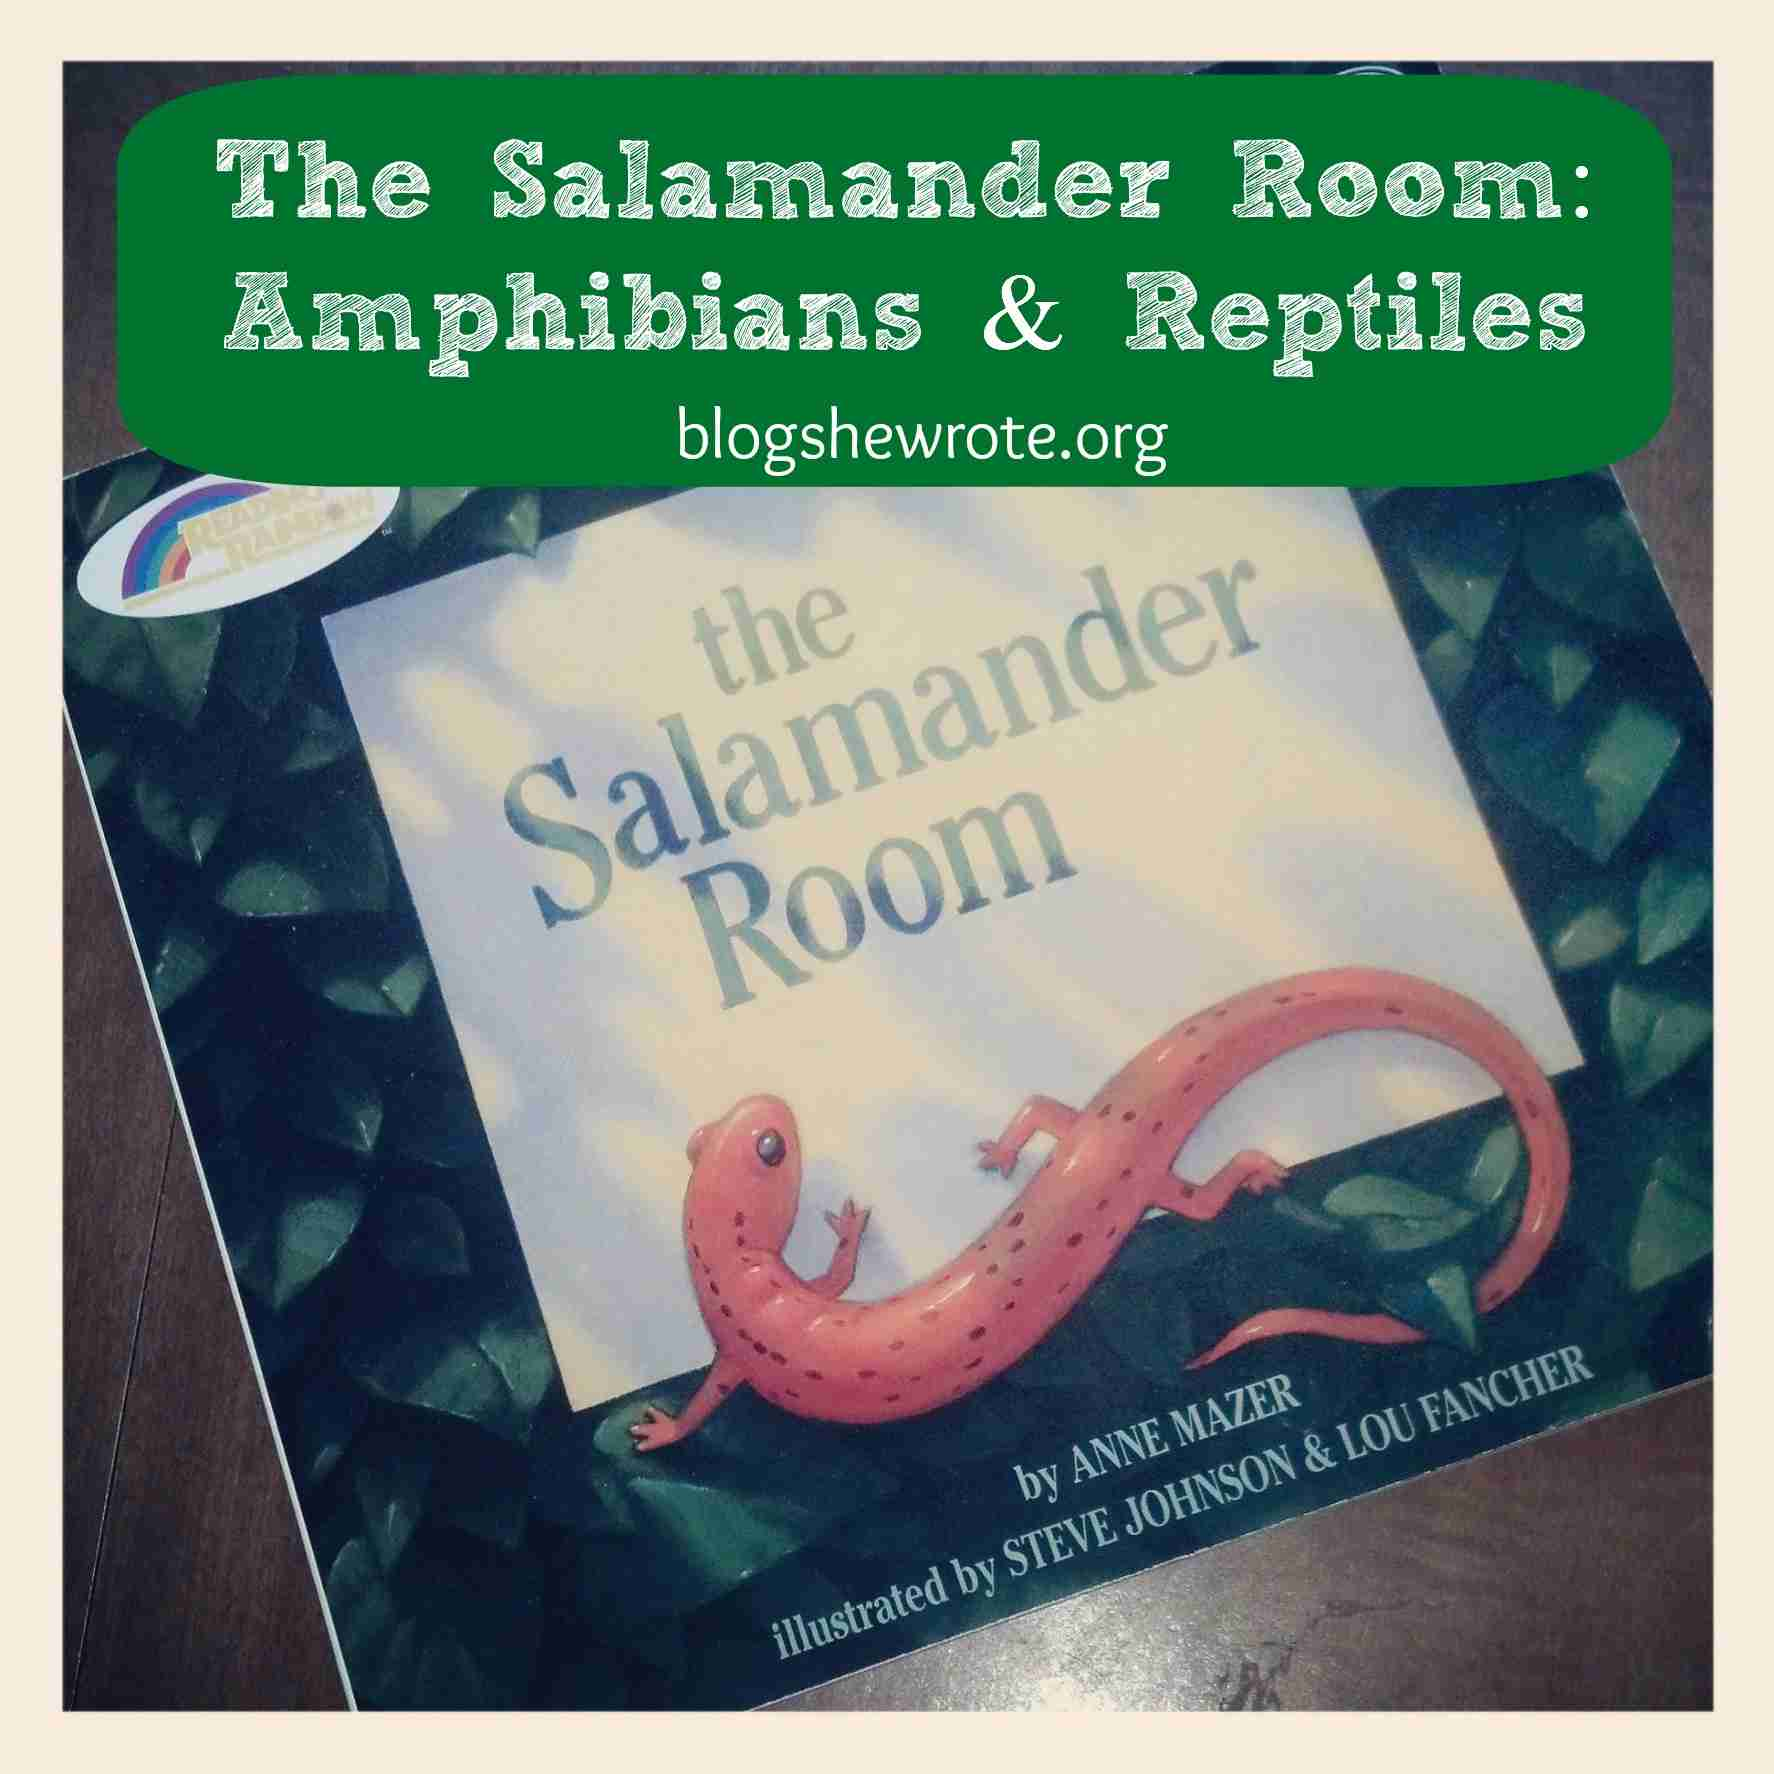 Blog, She Wrote: The Salamander Room- Amphibians & Reptiles